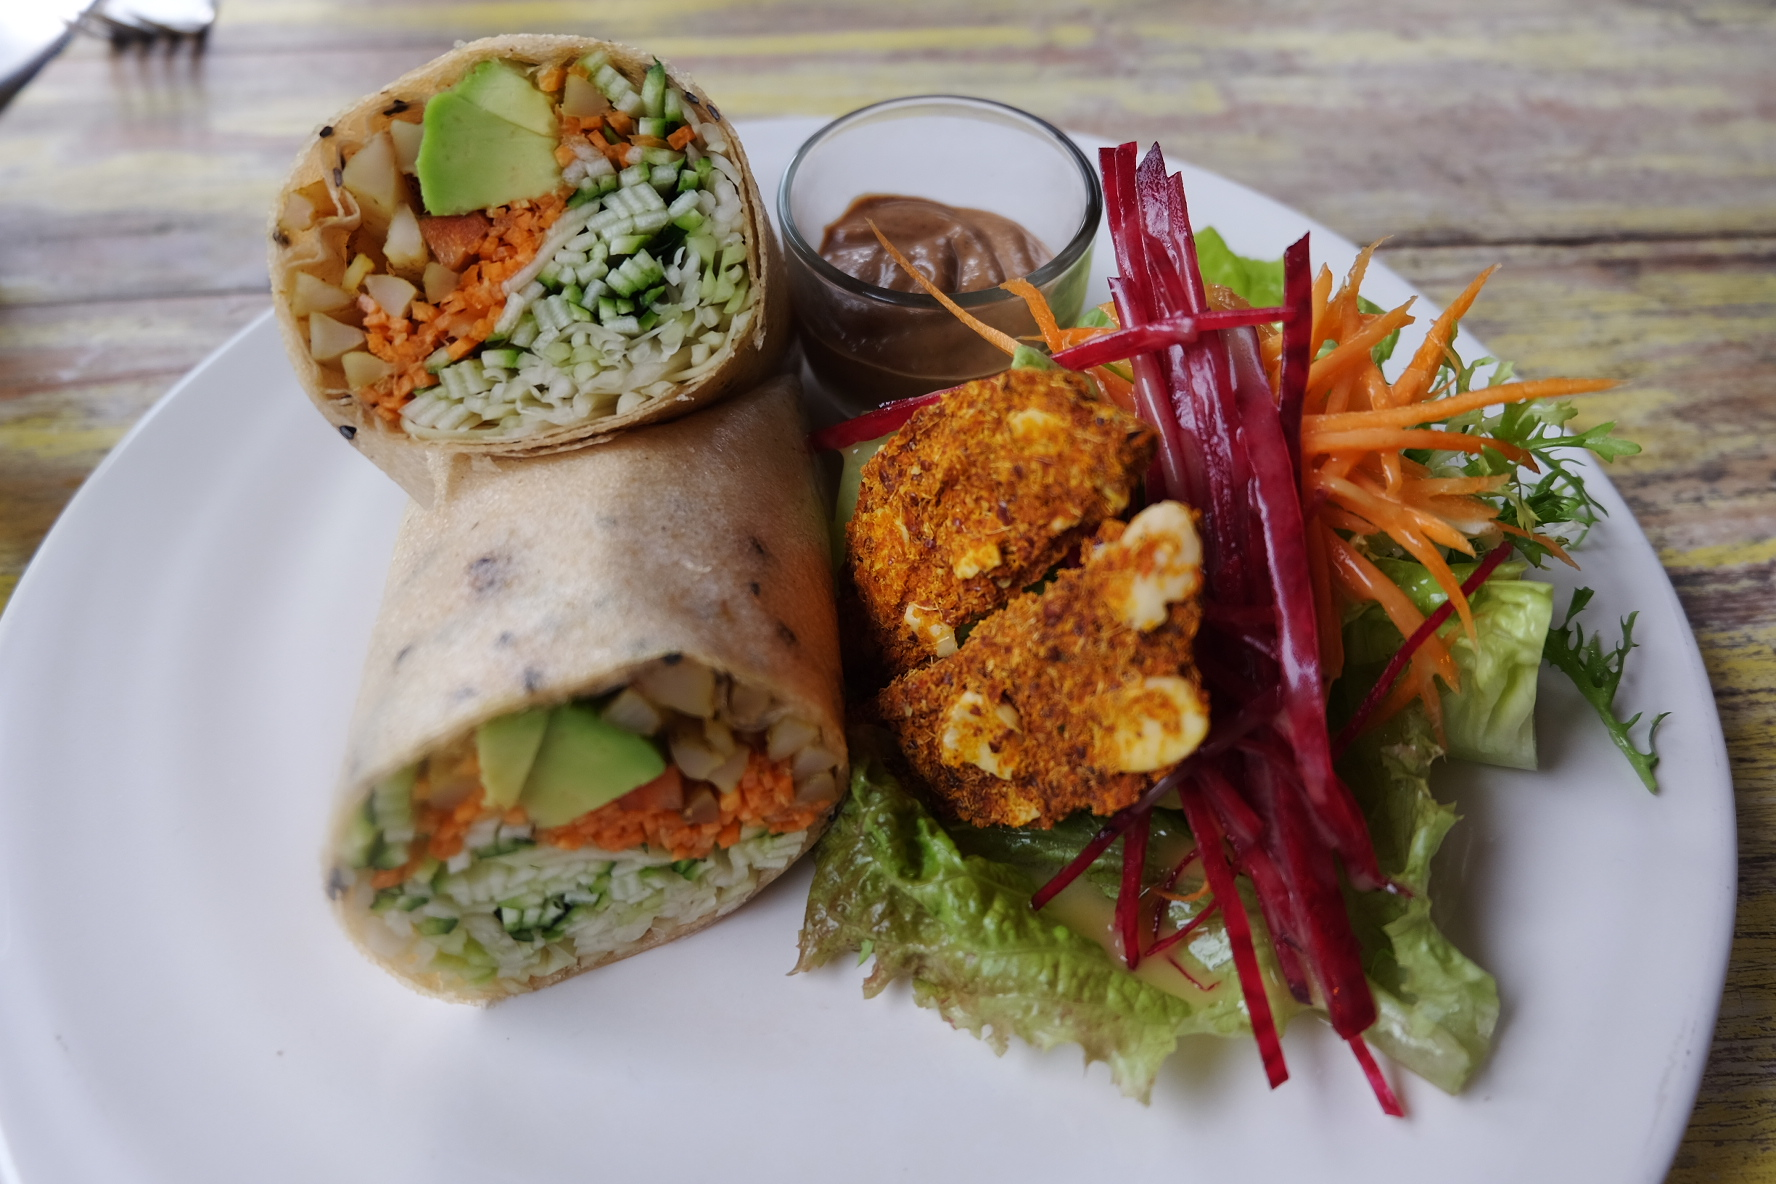 Coconut Wrap at Clear Cafe, Ubud